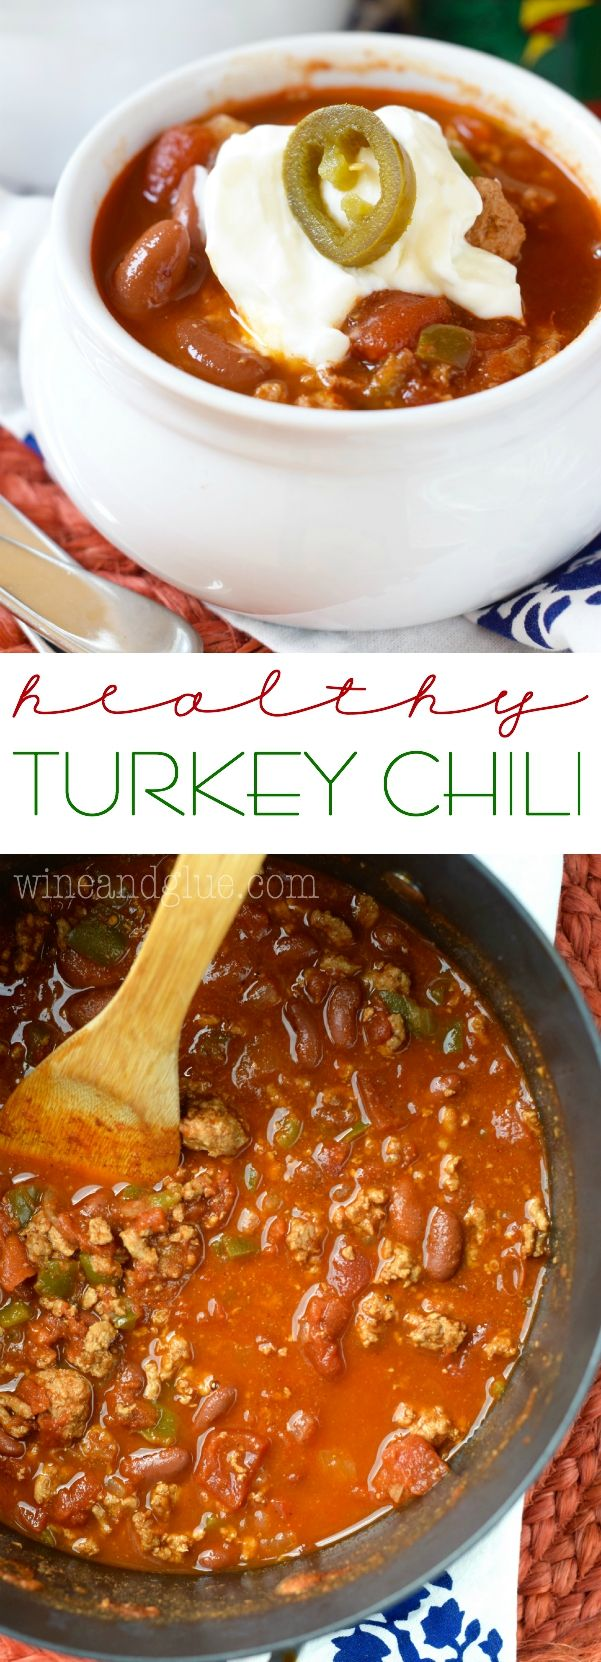 Healthy Turkey Chili that is hearty, warming, and super delicious! Nx